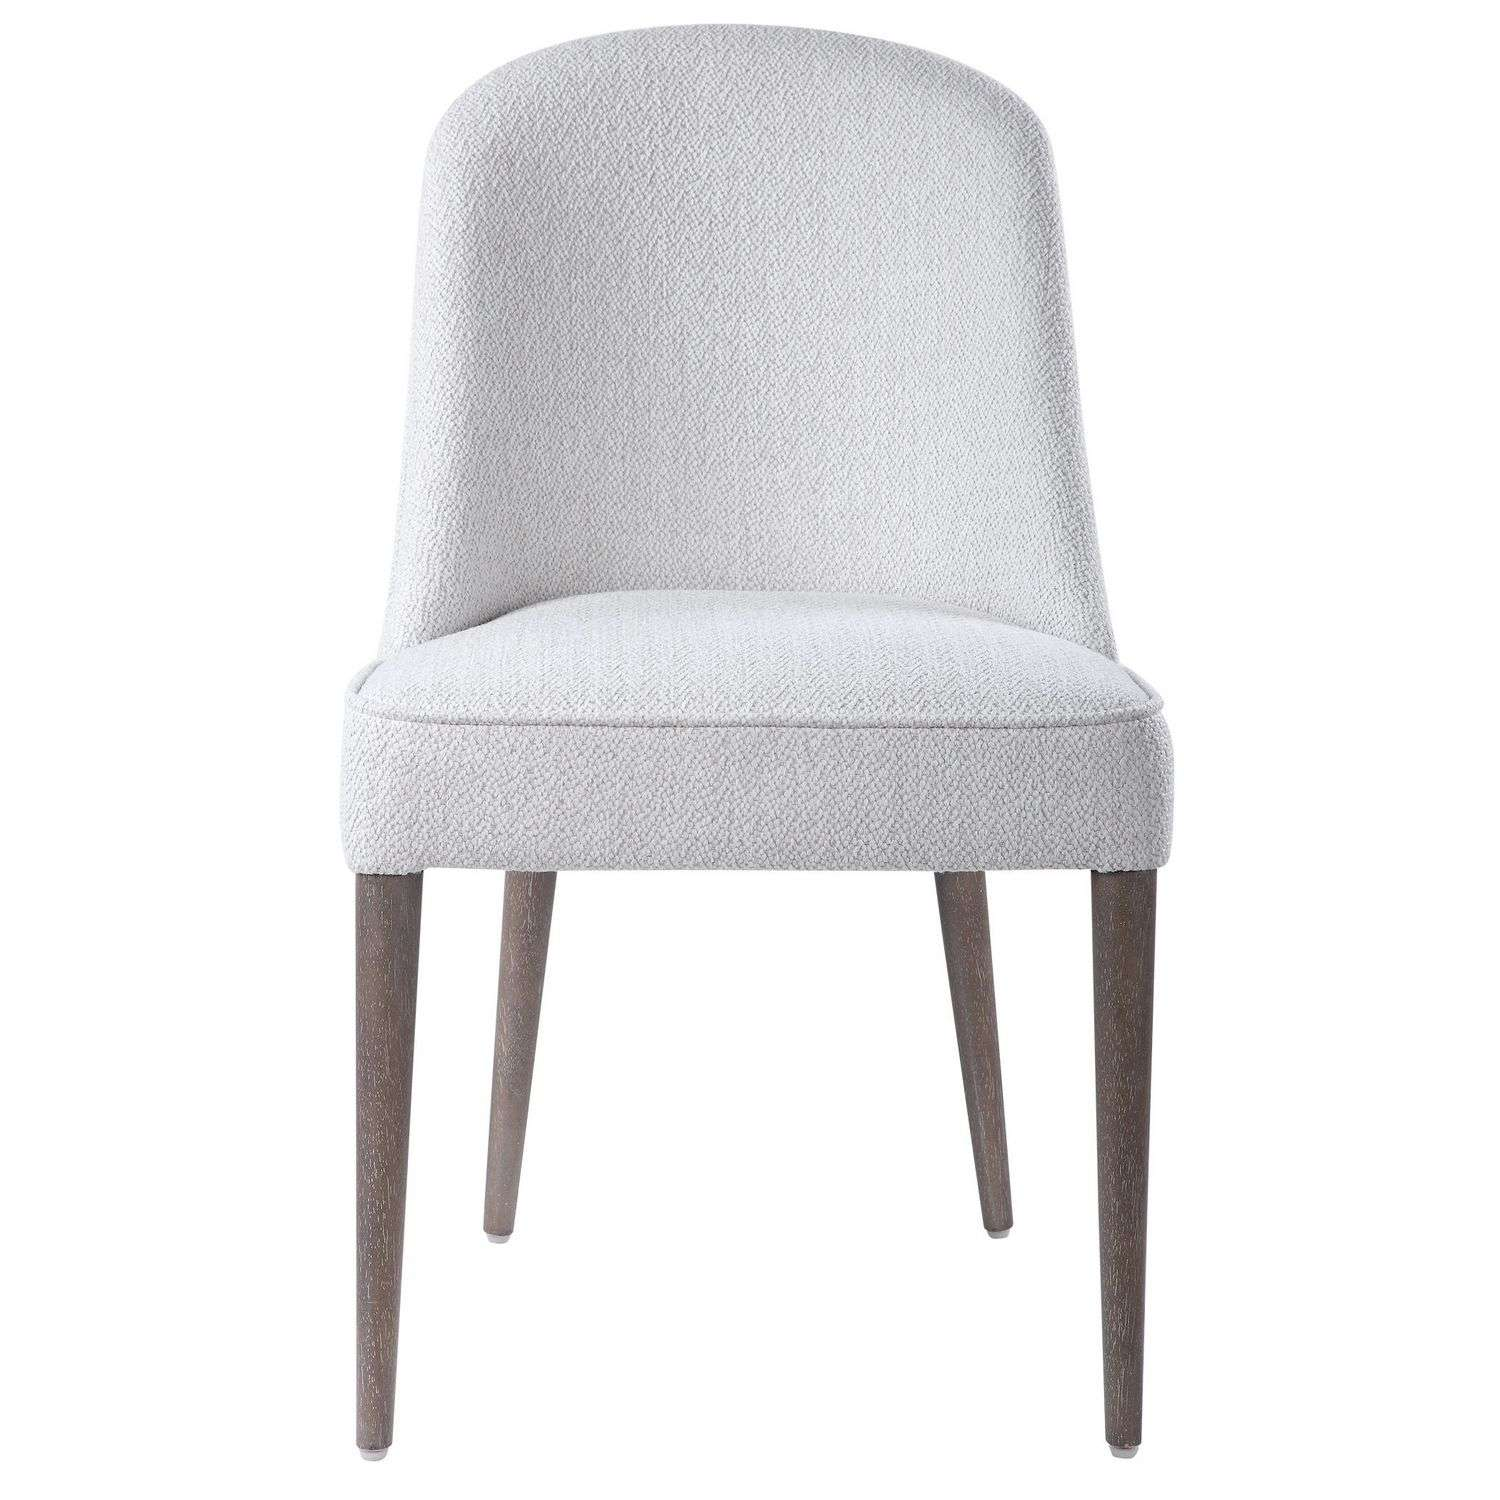 Uttermost Brie Armless Chair - Set of 2 - White